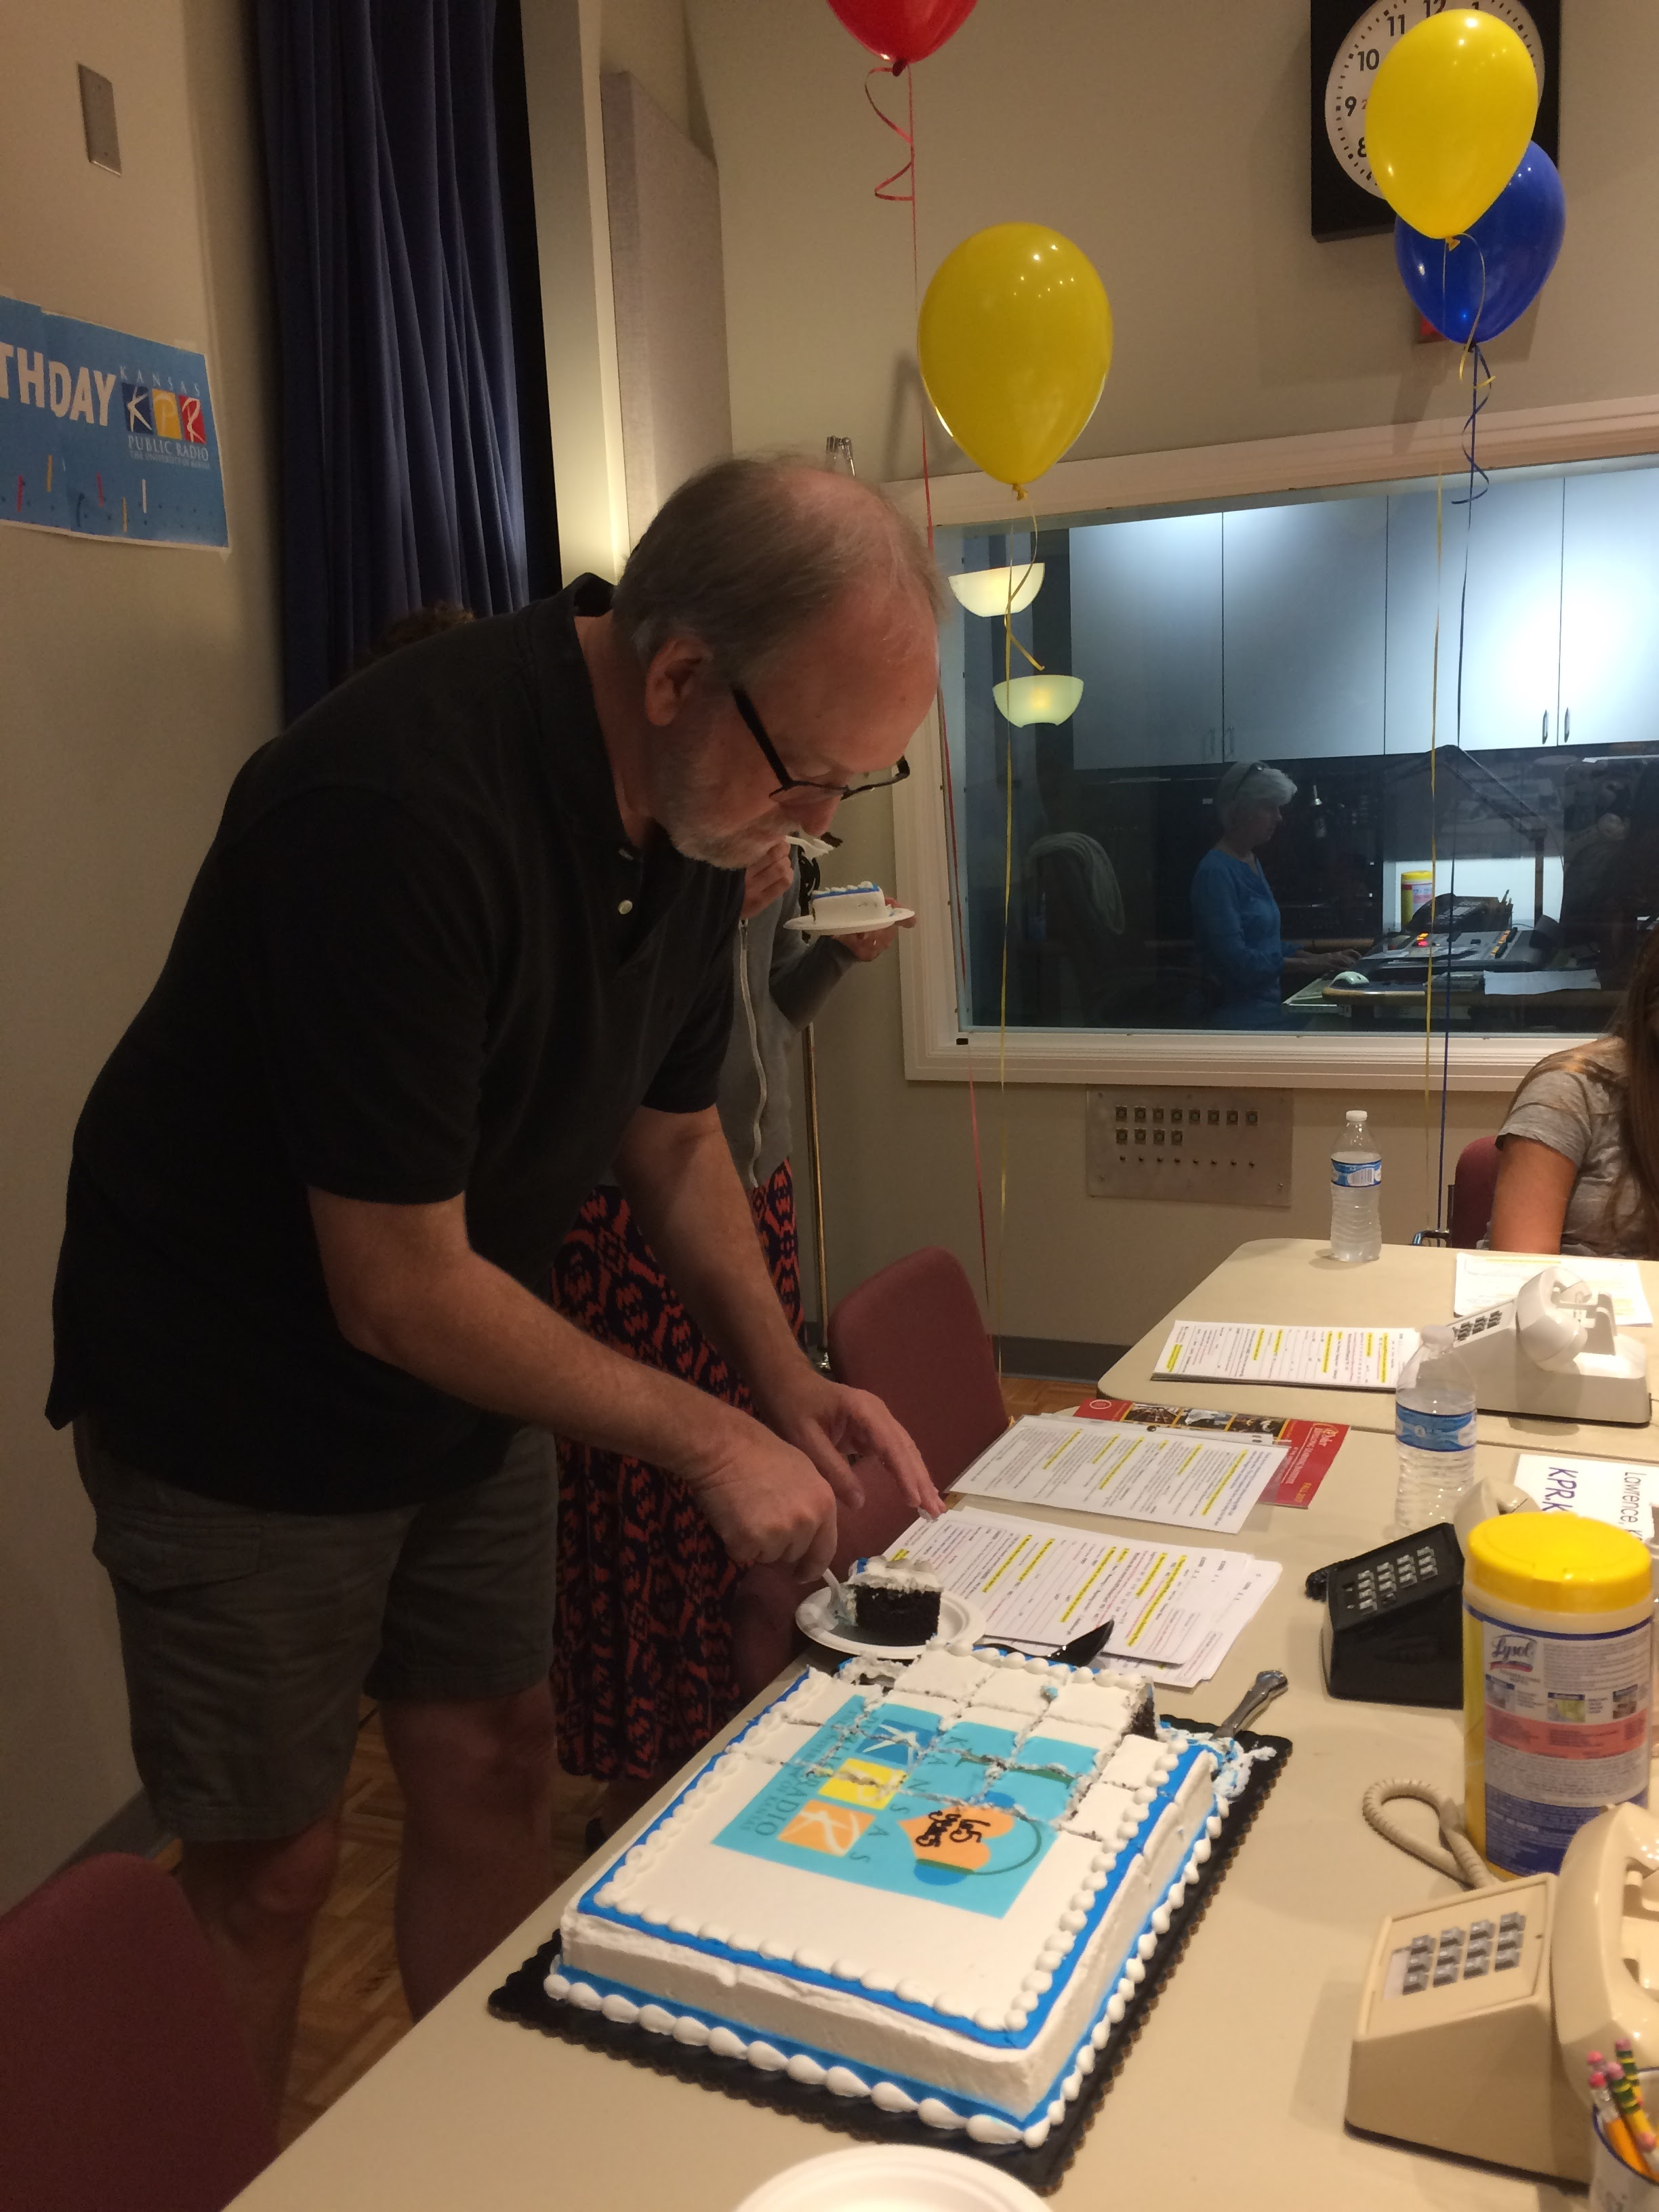 KPR's Program Director, Darrell Brogdon, dishes out the 65th birthday cake celebrating the end of the membership drive.